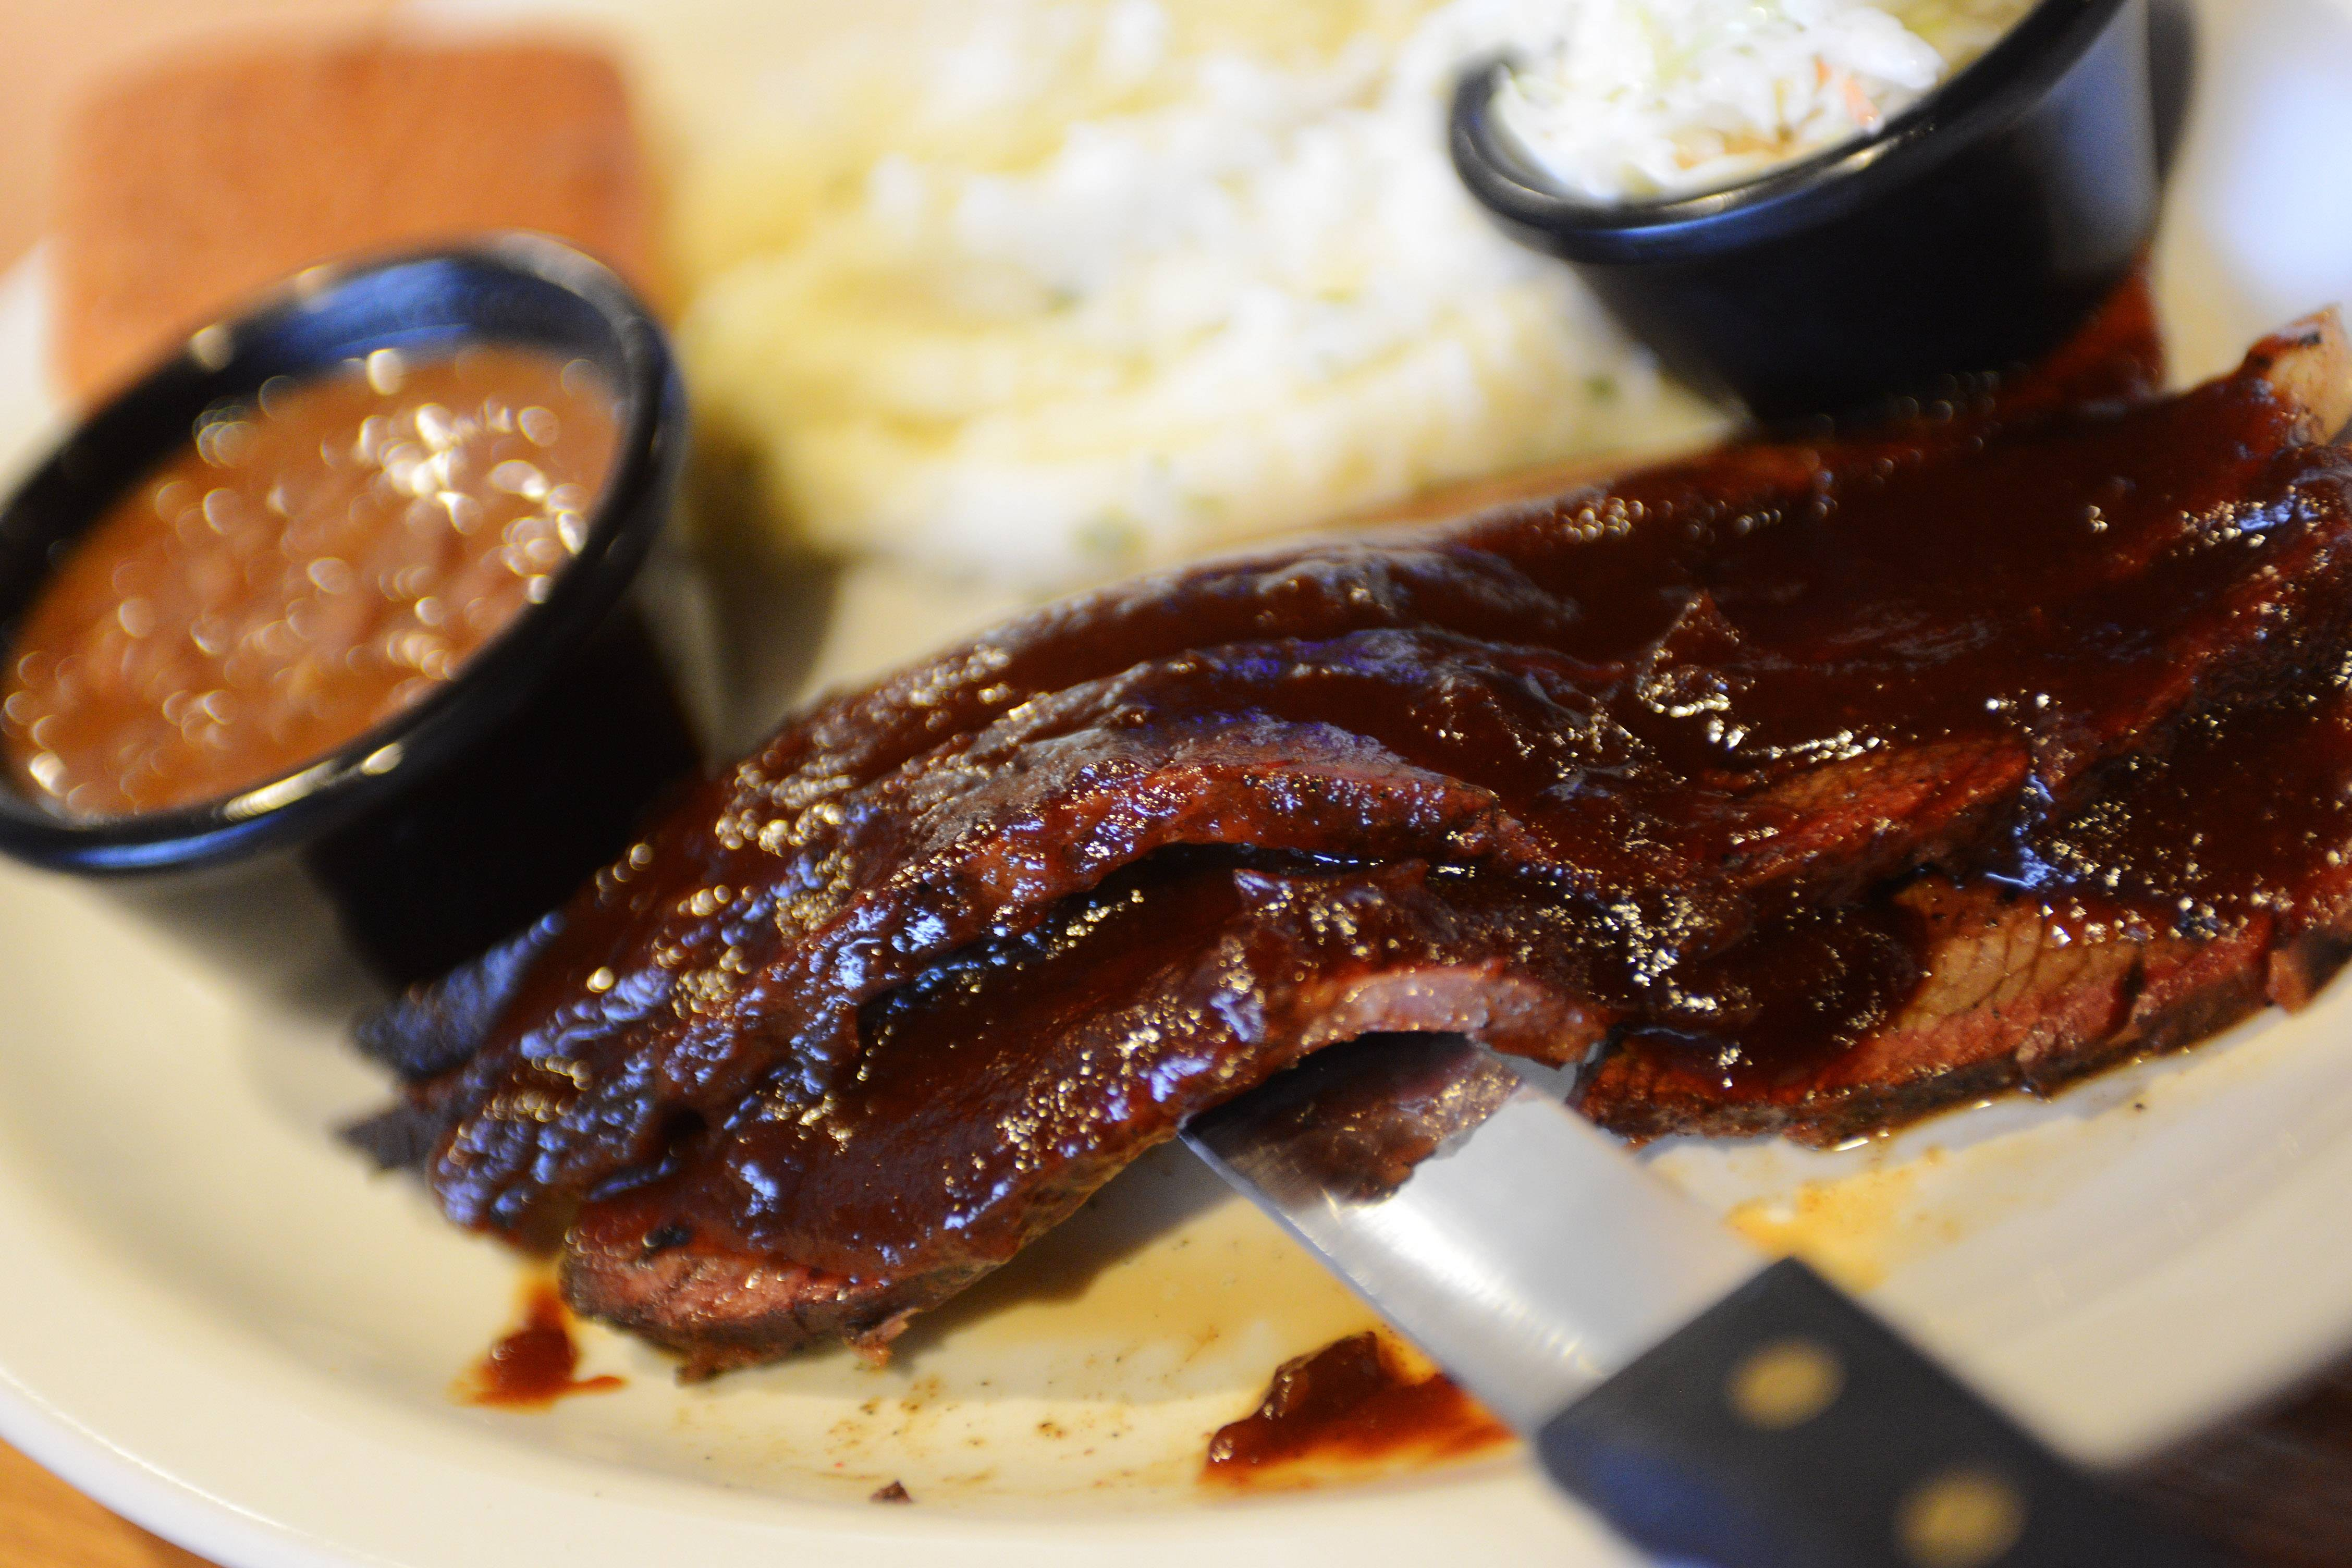 Beef brisket is one of the barbecue options at The Still Bar and Grill in Bartlett.